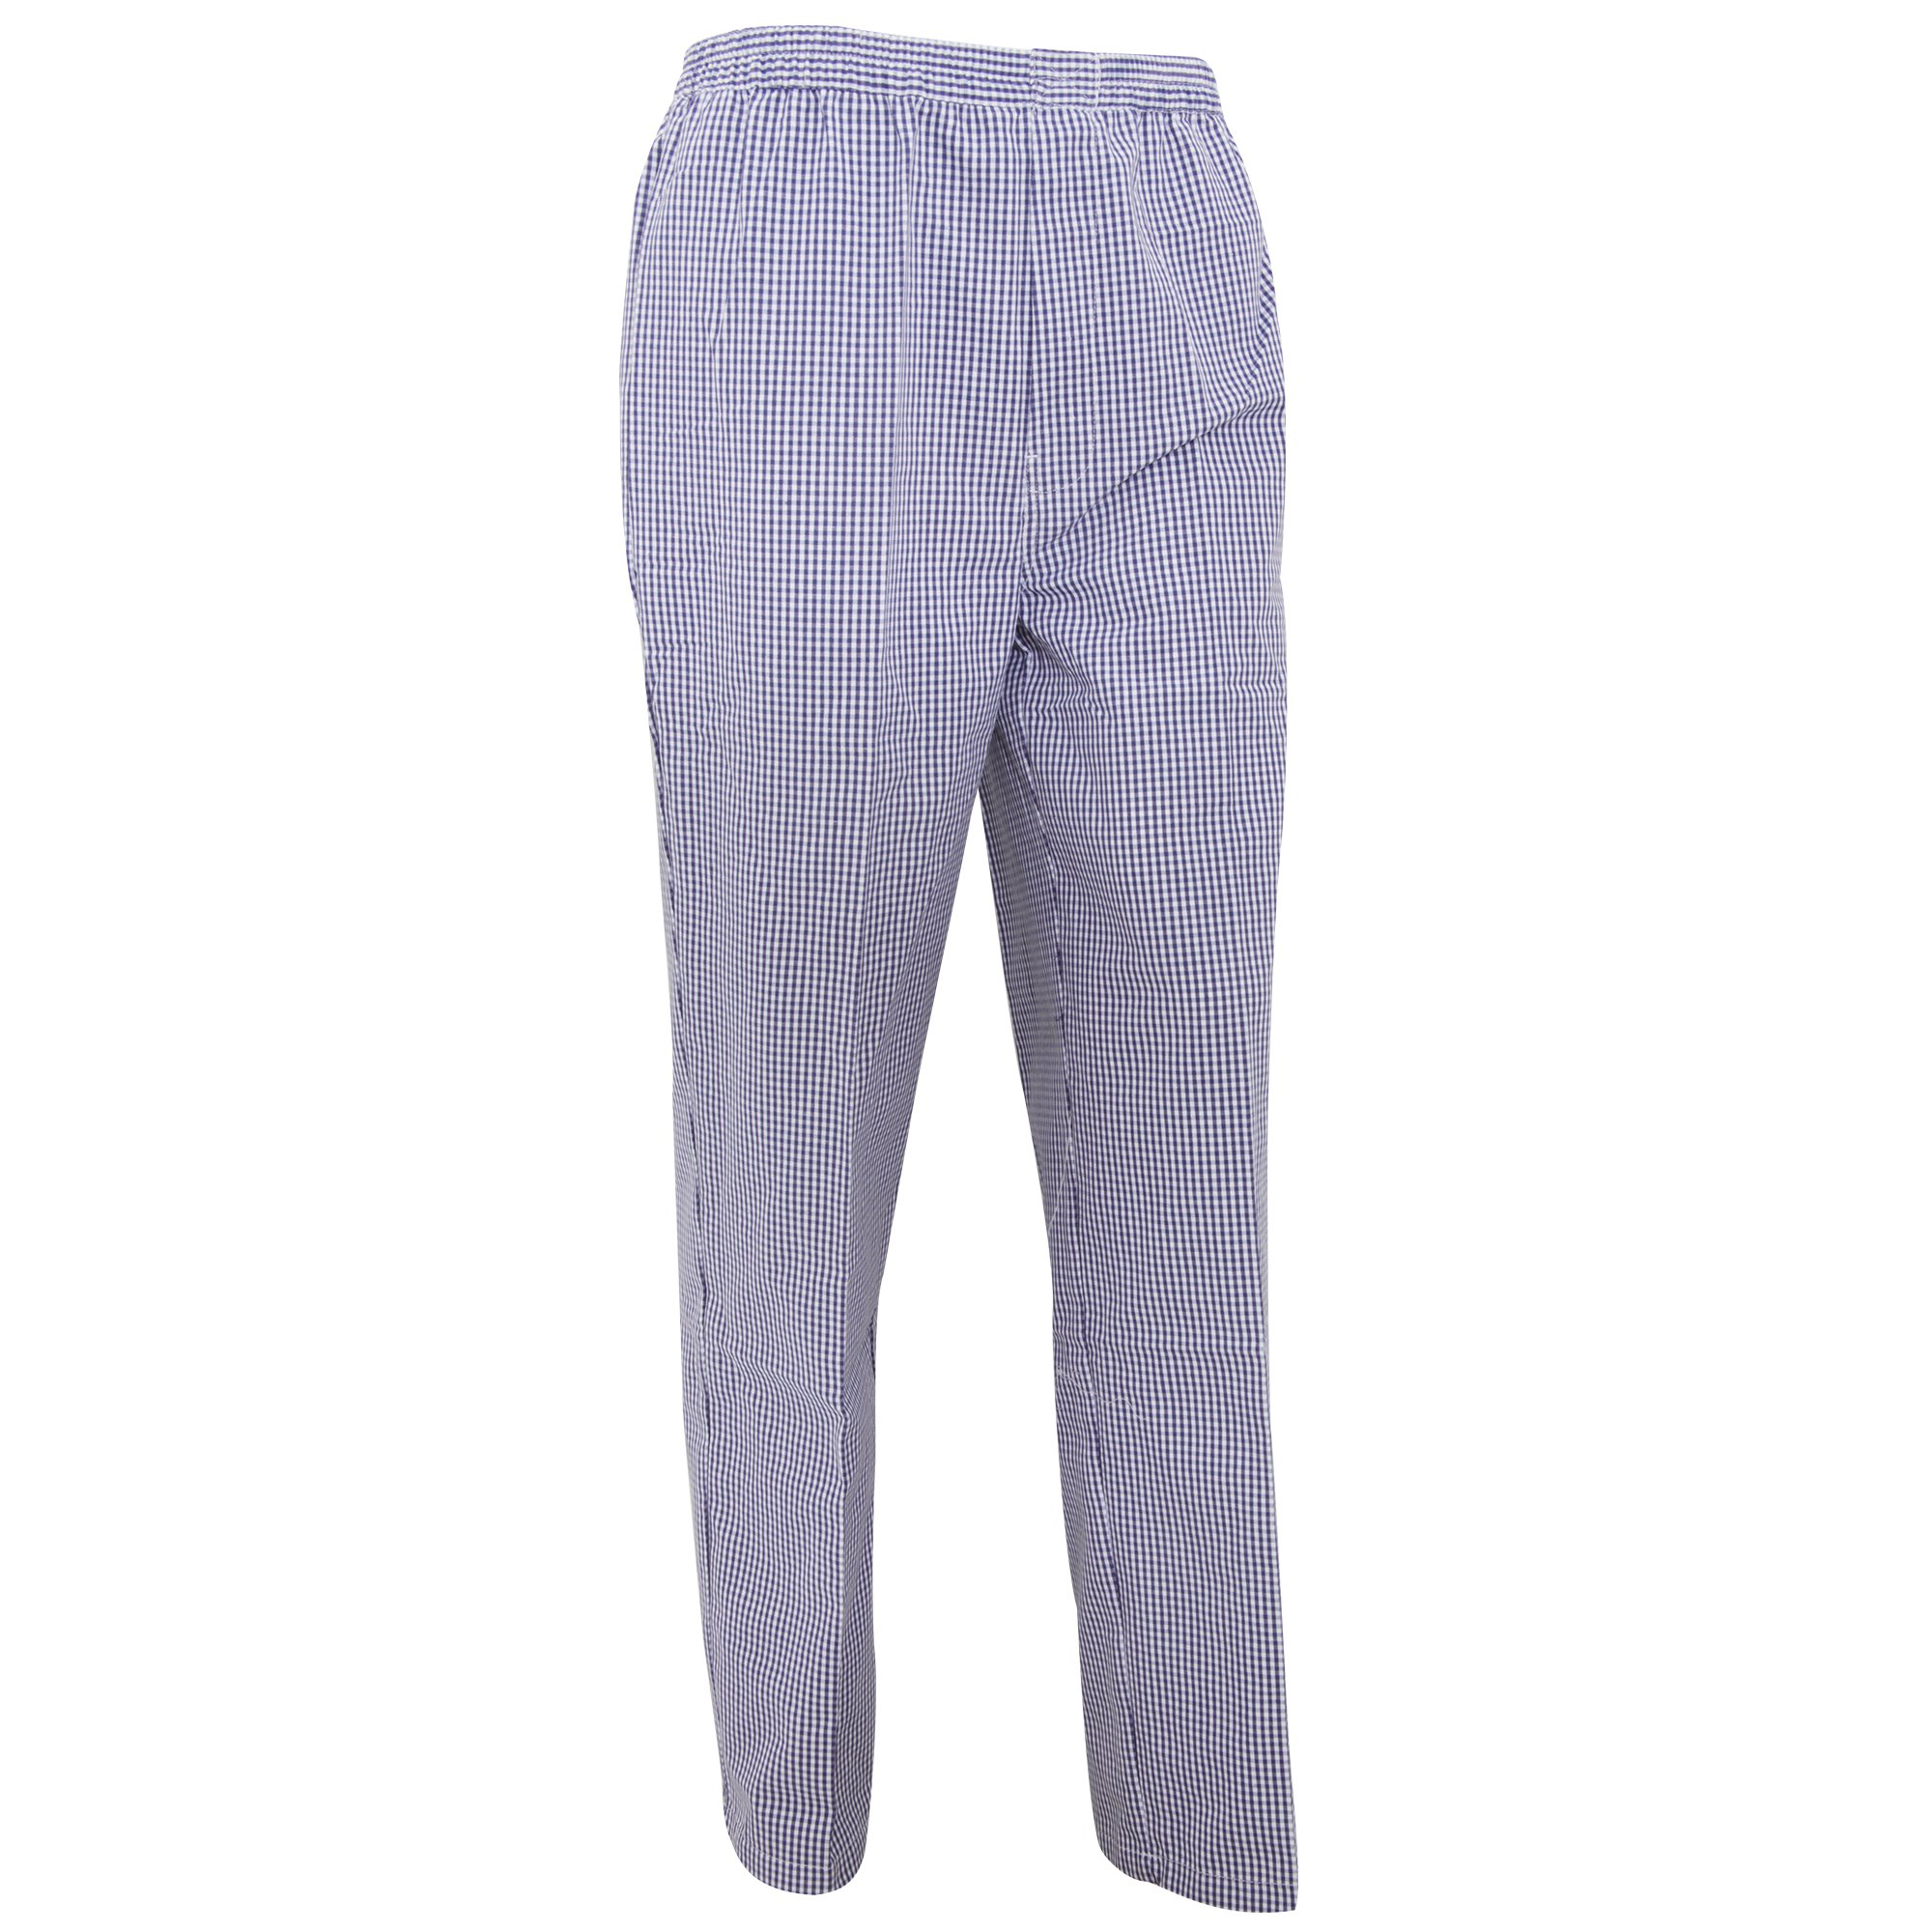 Premier Unisex Pull-on Chefs Trousers / Catering Workwear (S) (Navy/White Check)